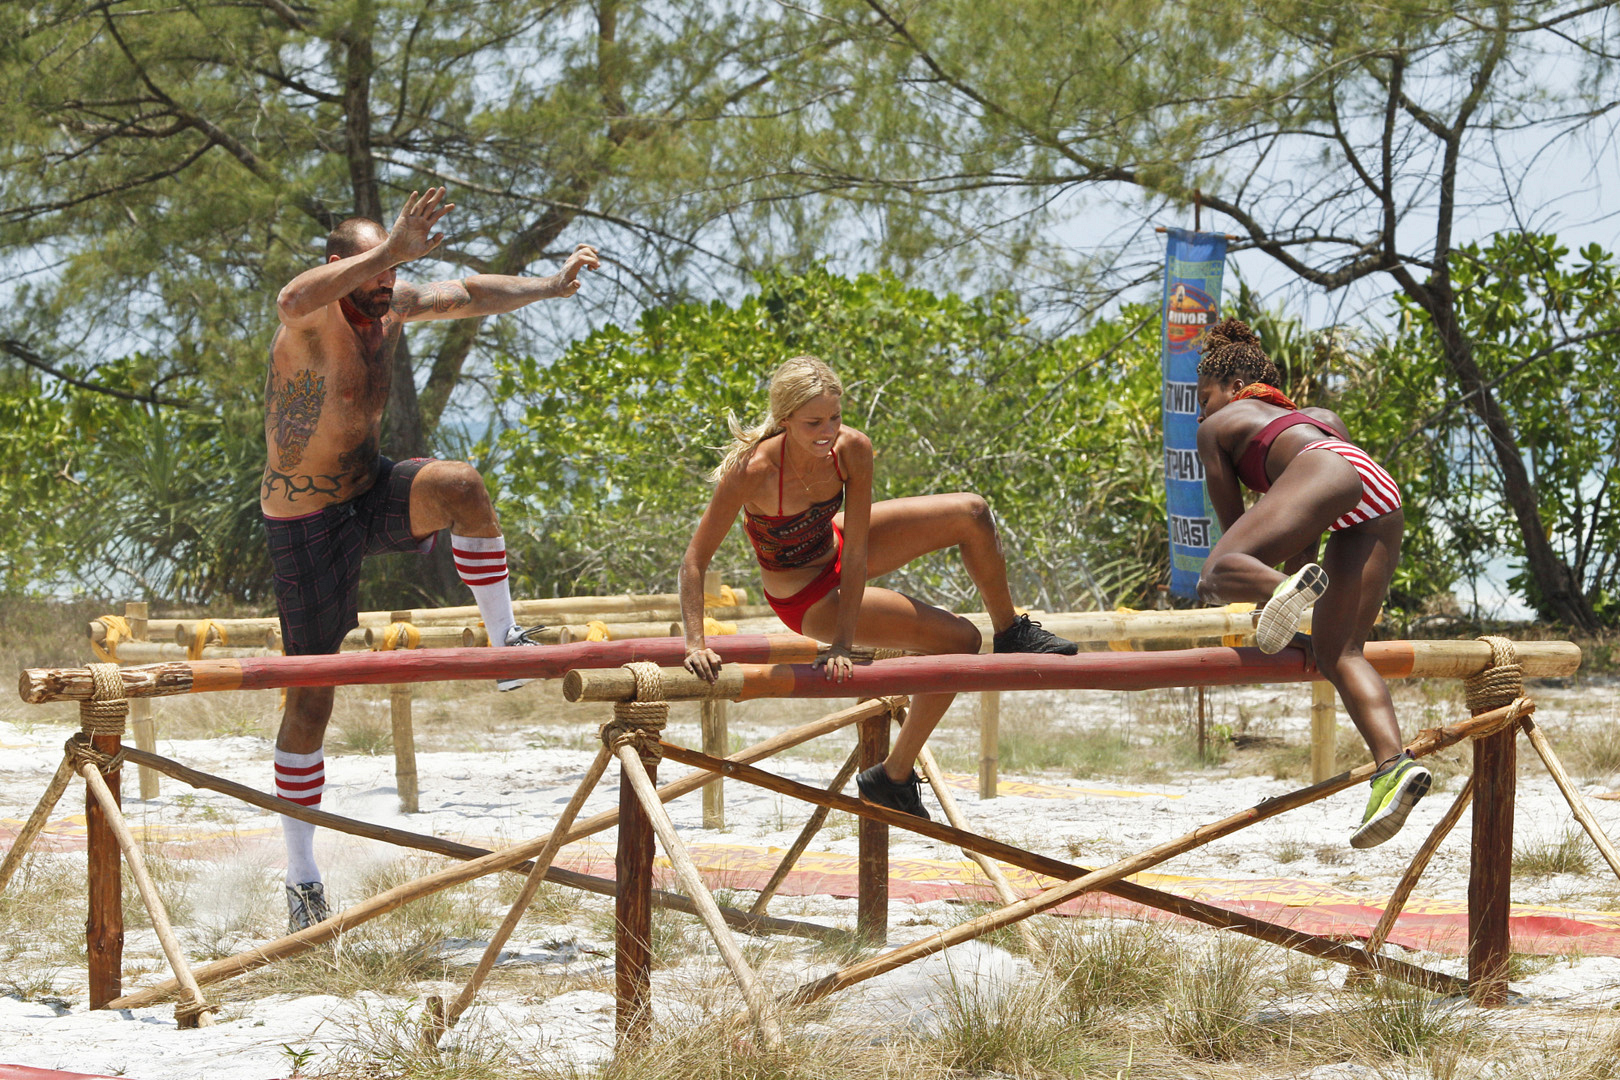 Brawn Tribe memebers Scot, Alecia, and Cydney take a big leap.